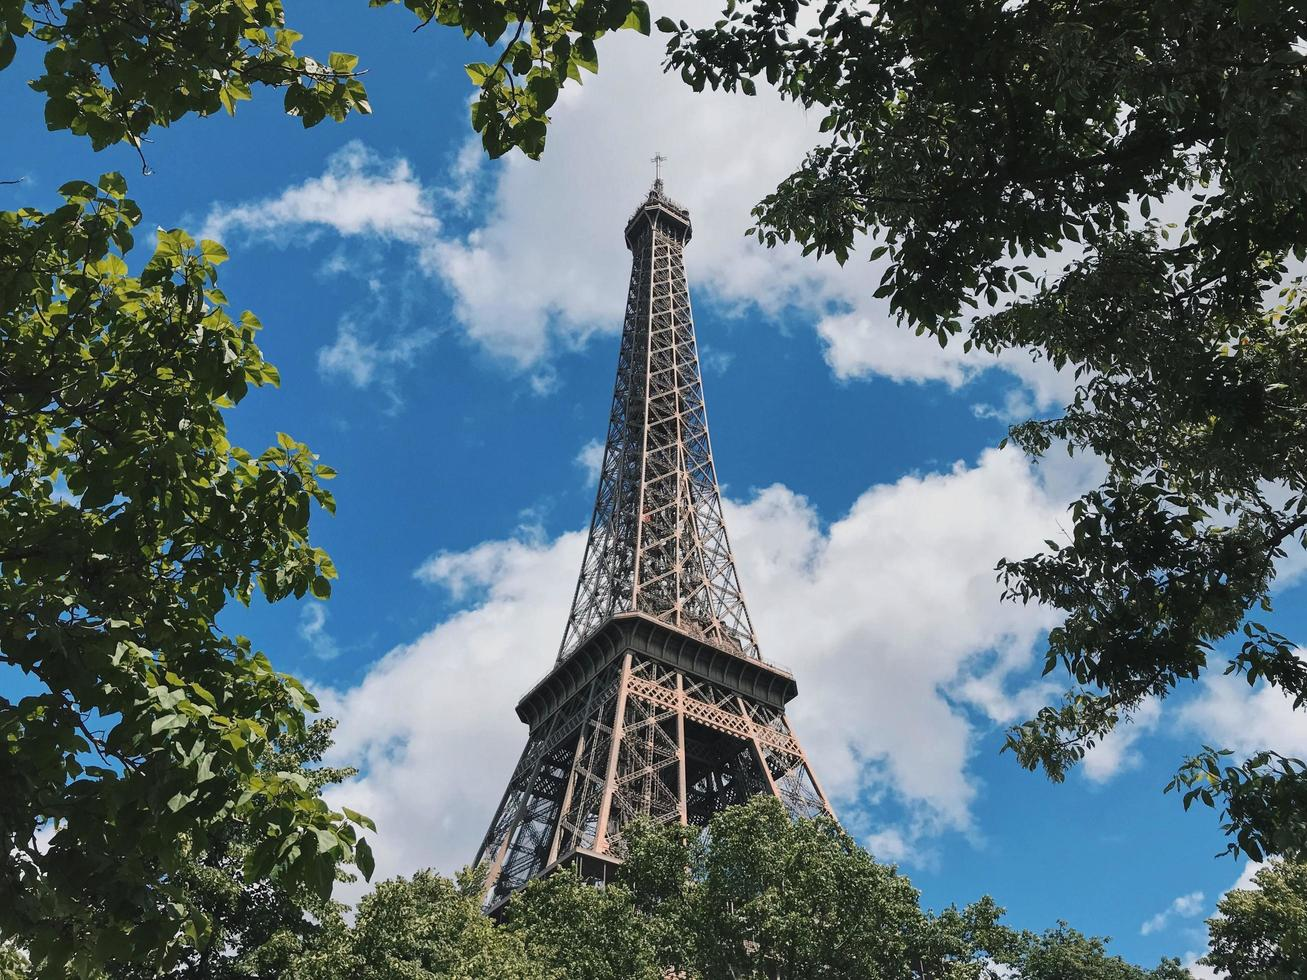 Eiffel Tower during the day photo